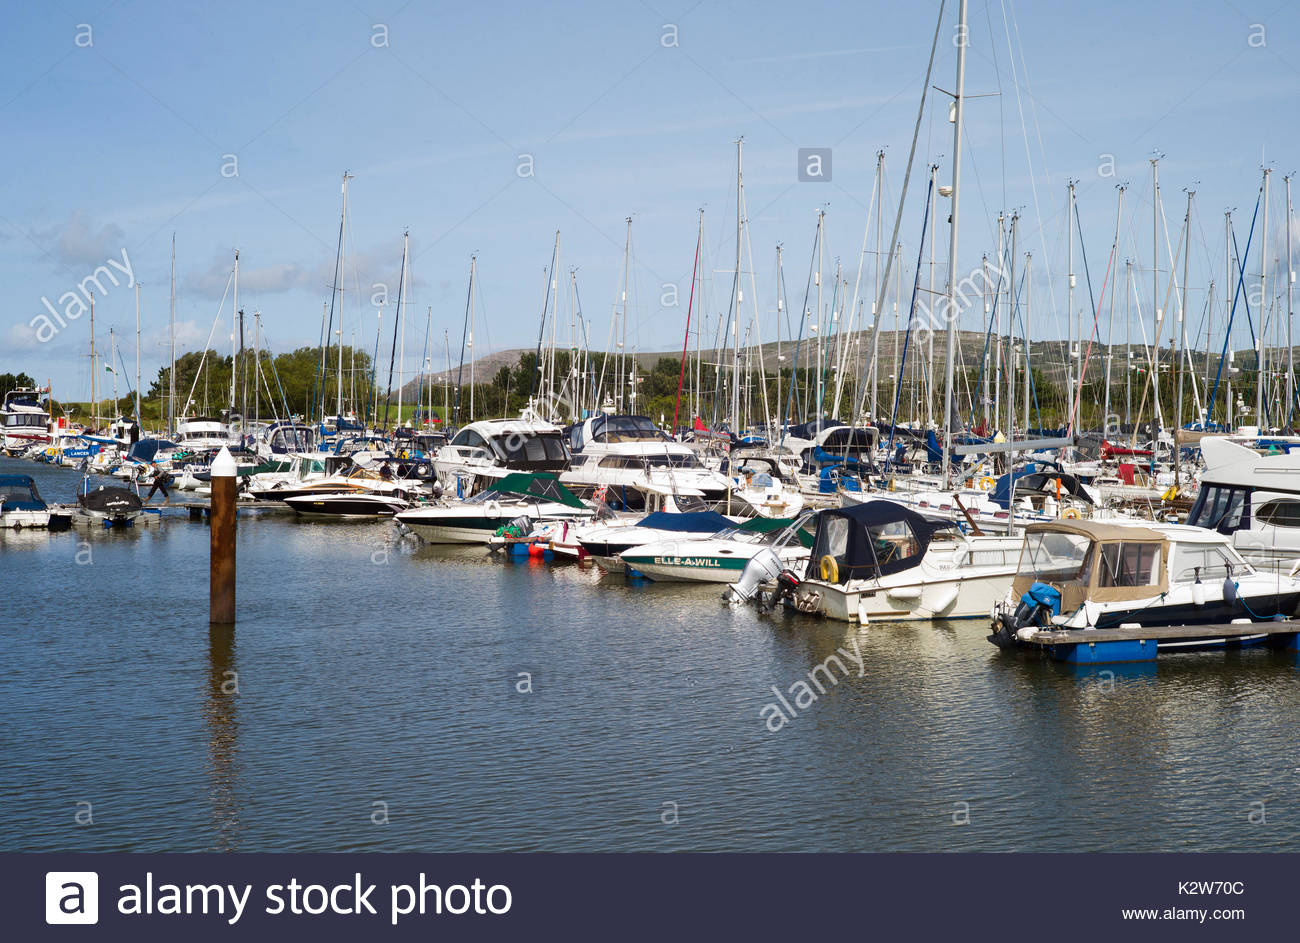 The newly developed marina at Conwy, north Wales, UK, with many sailing yachts and motor cruisers at their moorings. Stock Photo